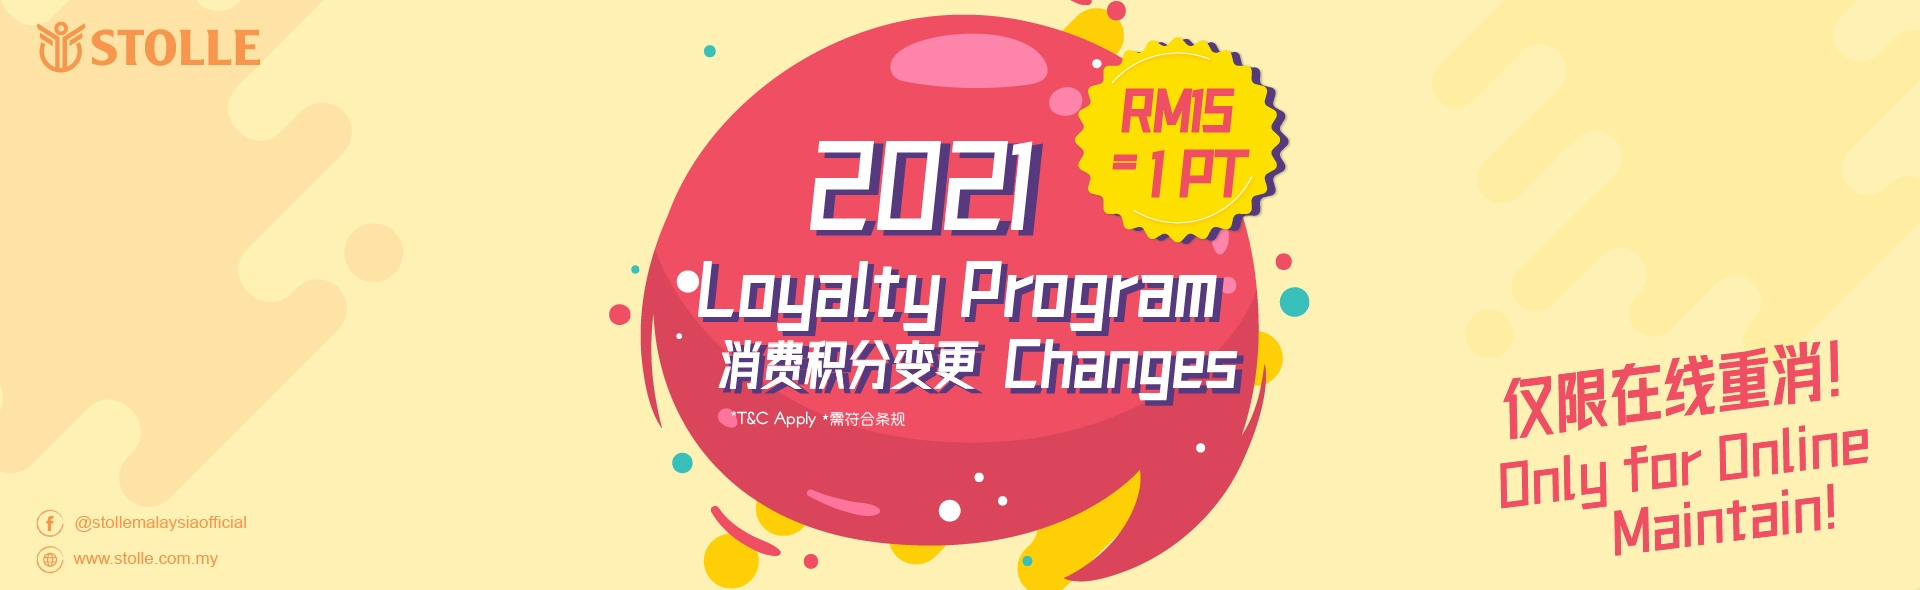 STOLLE 2021 Loyalty Points Changes